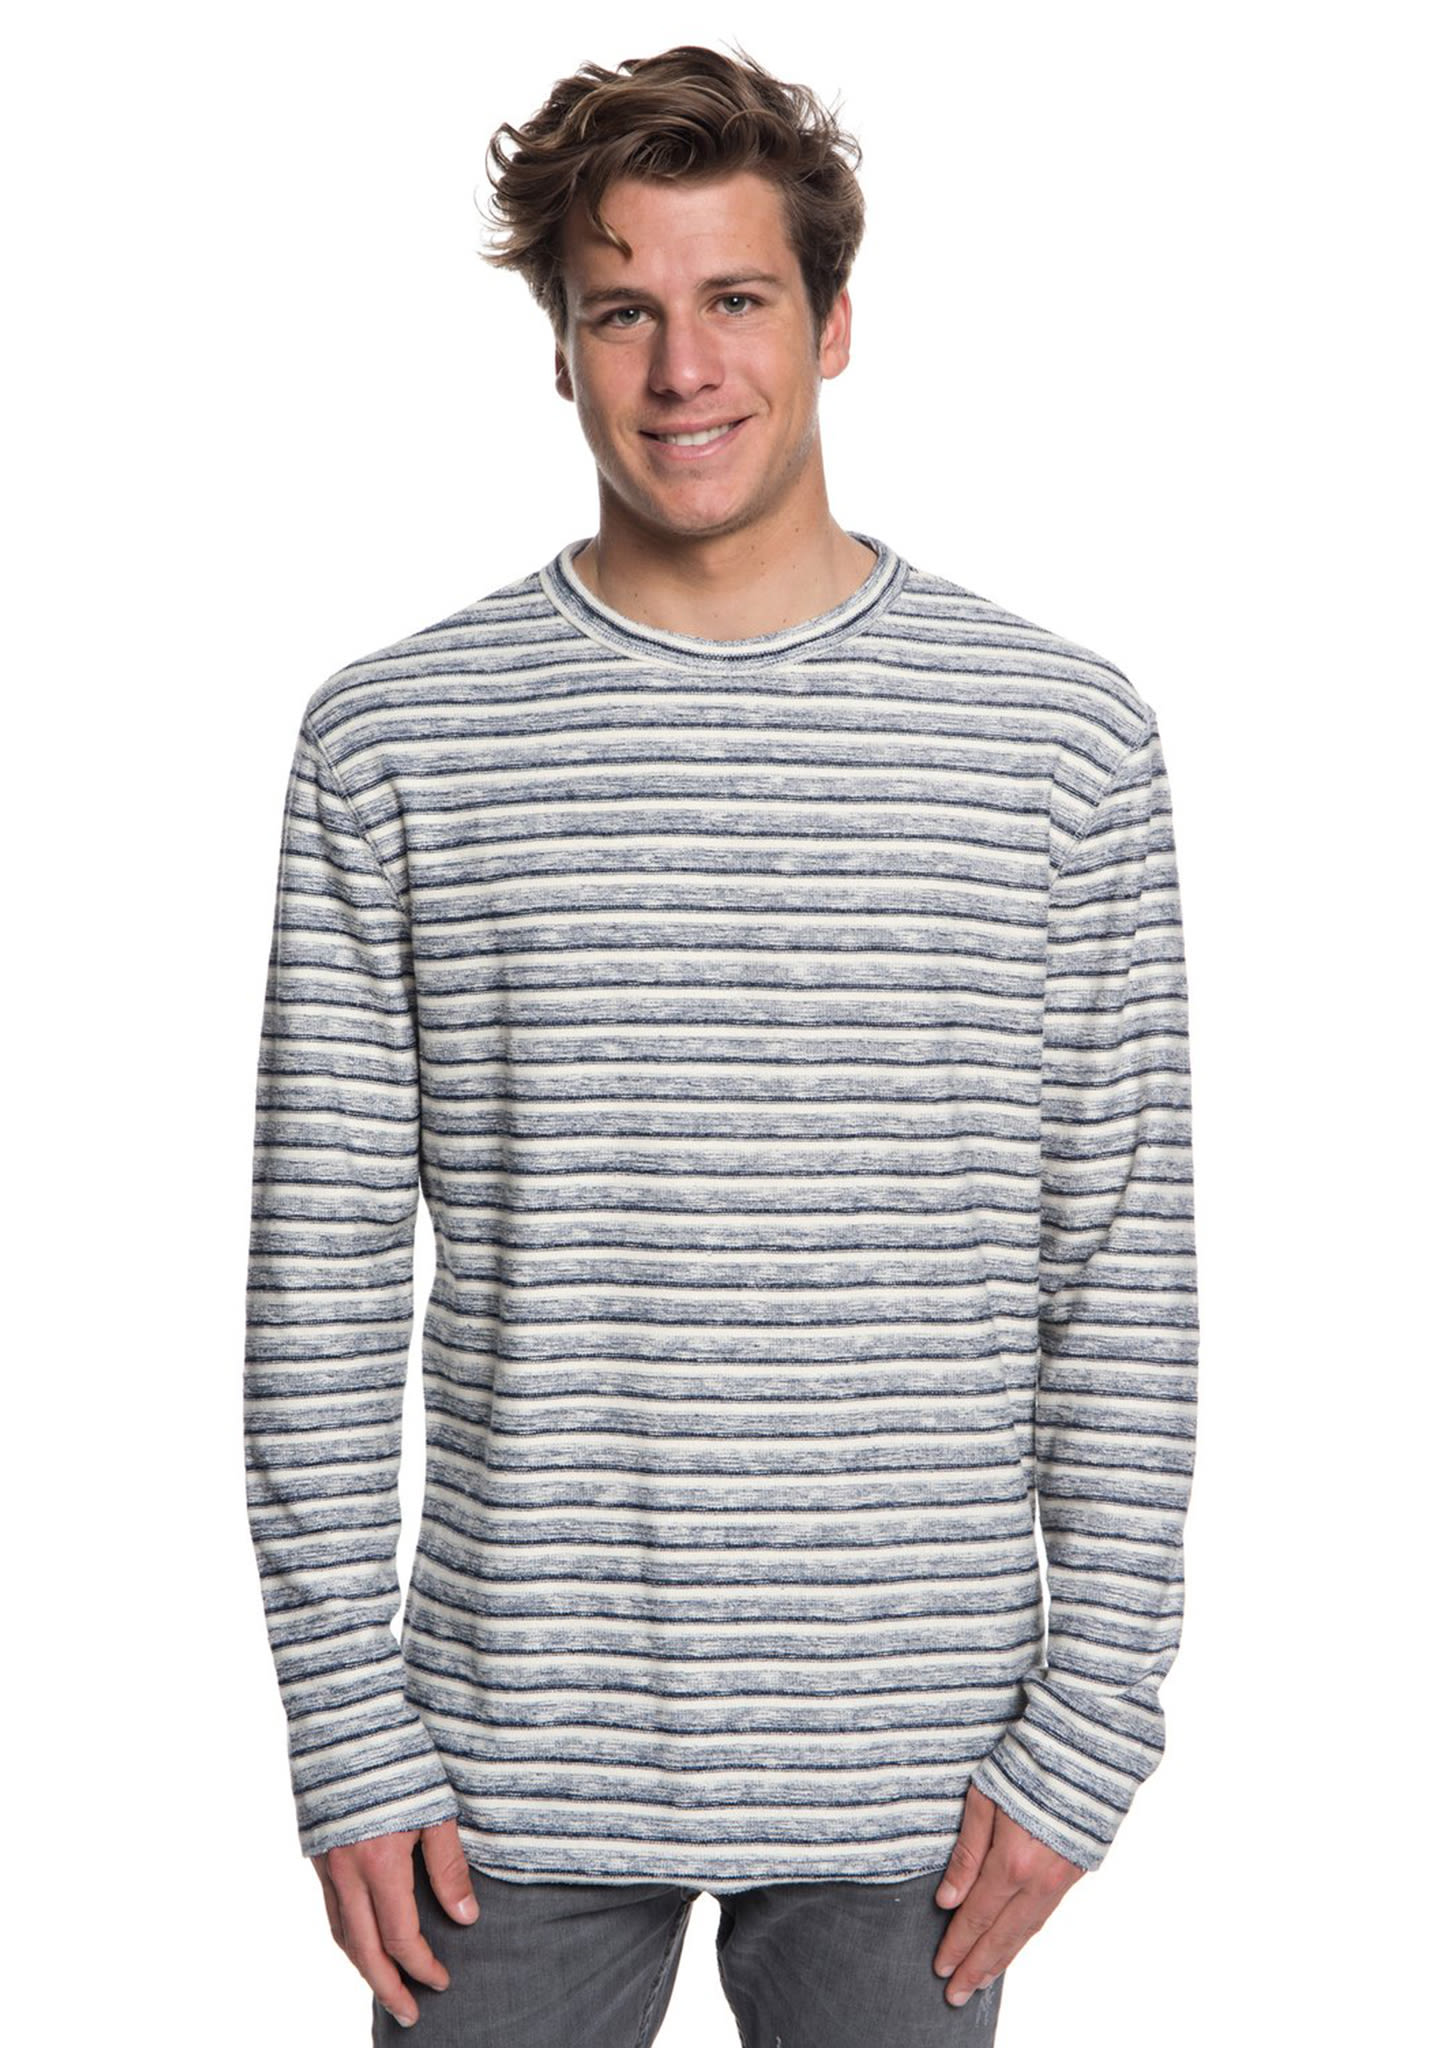 ace59d133a34 Quiksilver Harajuku Split - Long-sleeved Shirt for Men - Blue - Planet  Sports